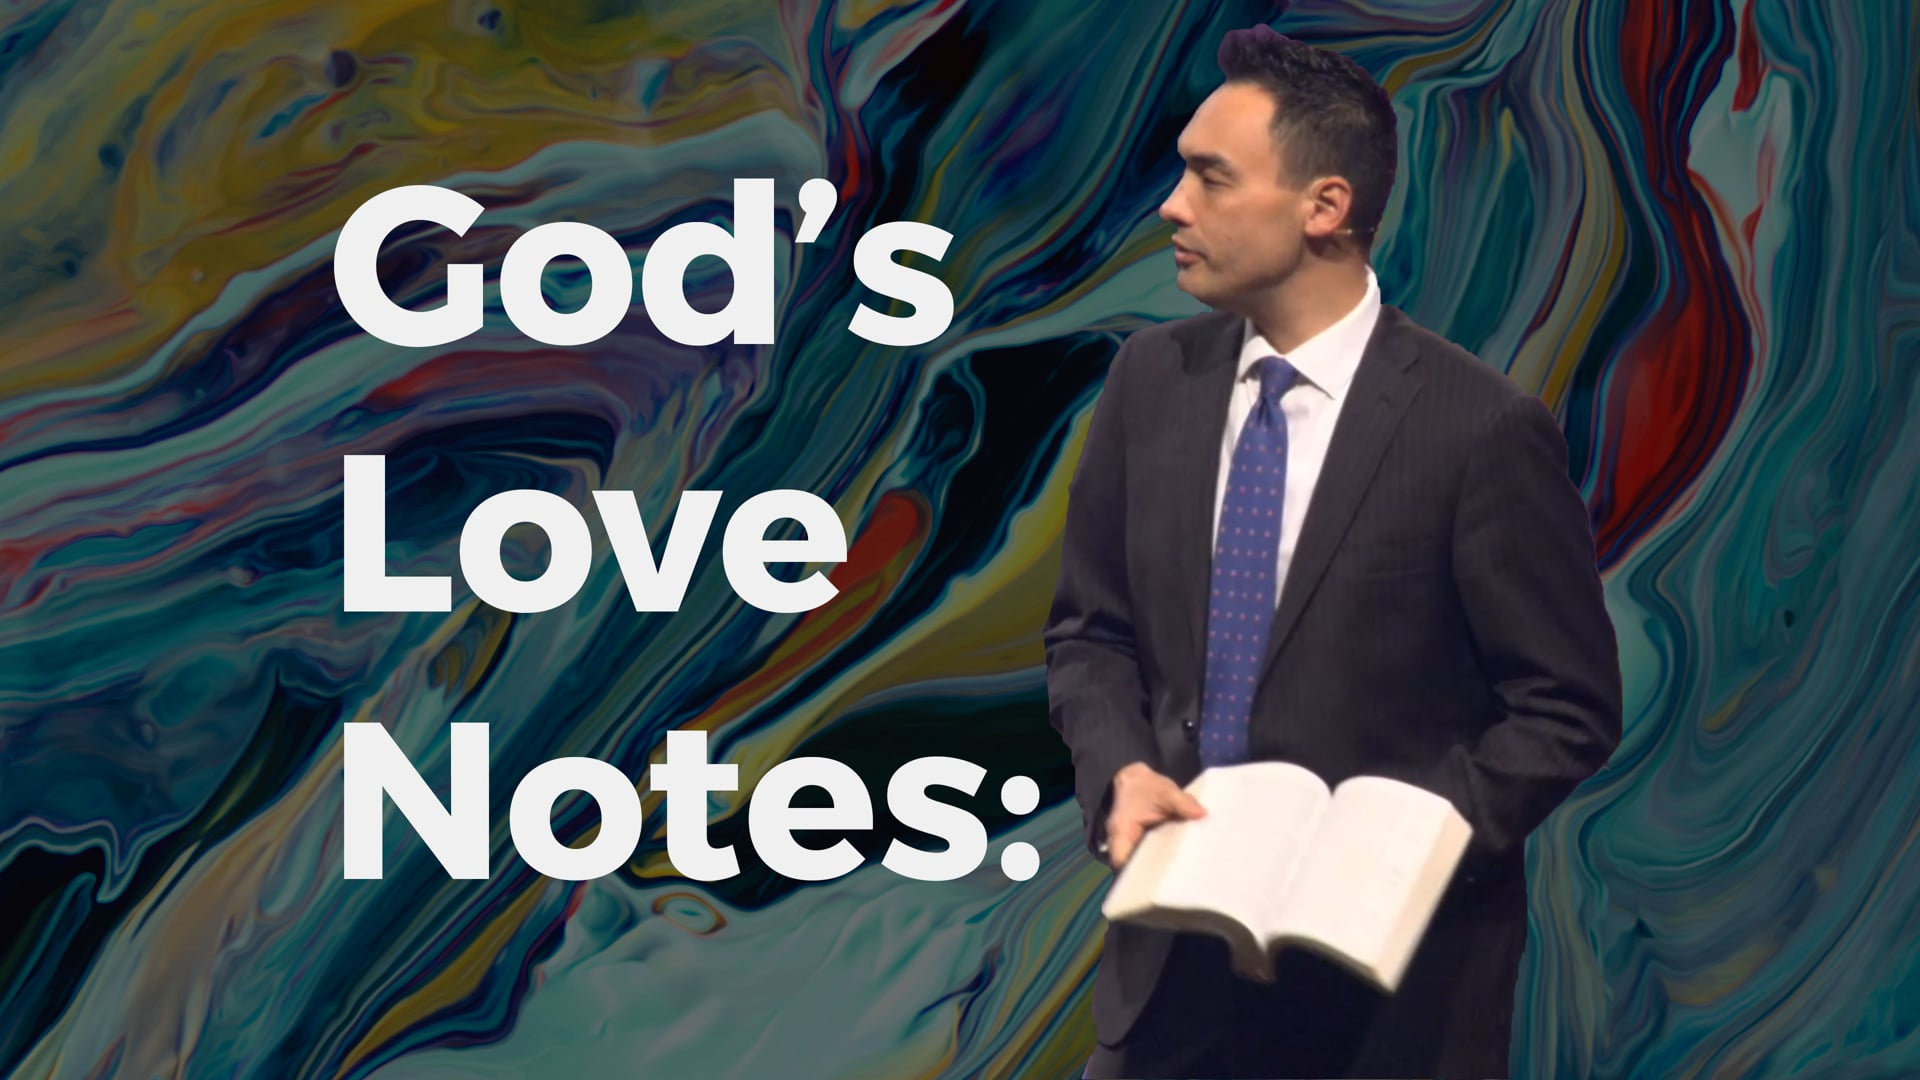 God's Love Notes